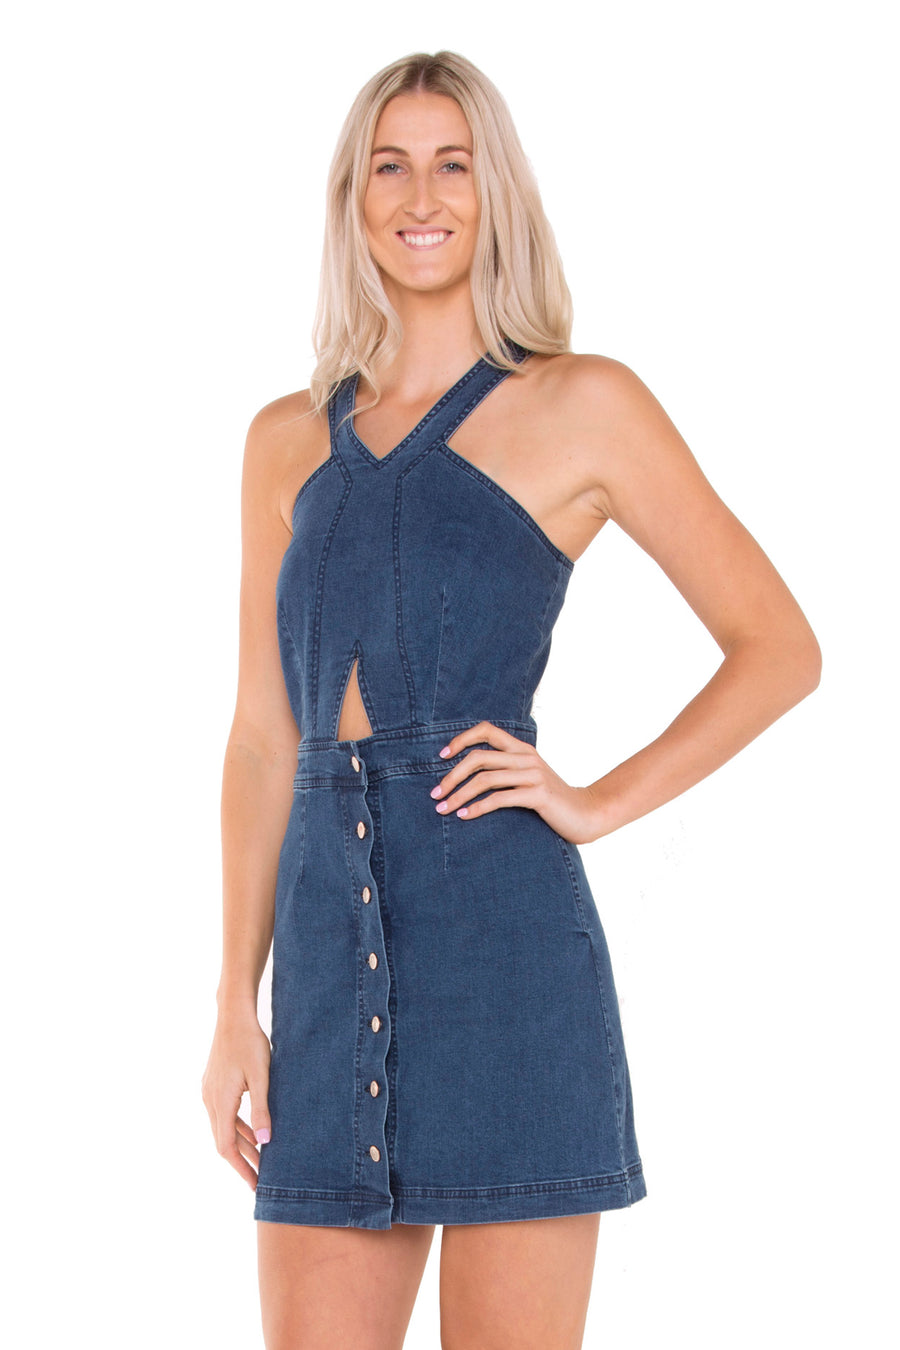 tall-denim-cut-out-dress-beach-waves